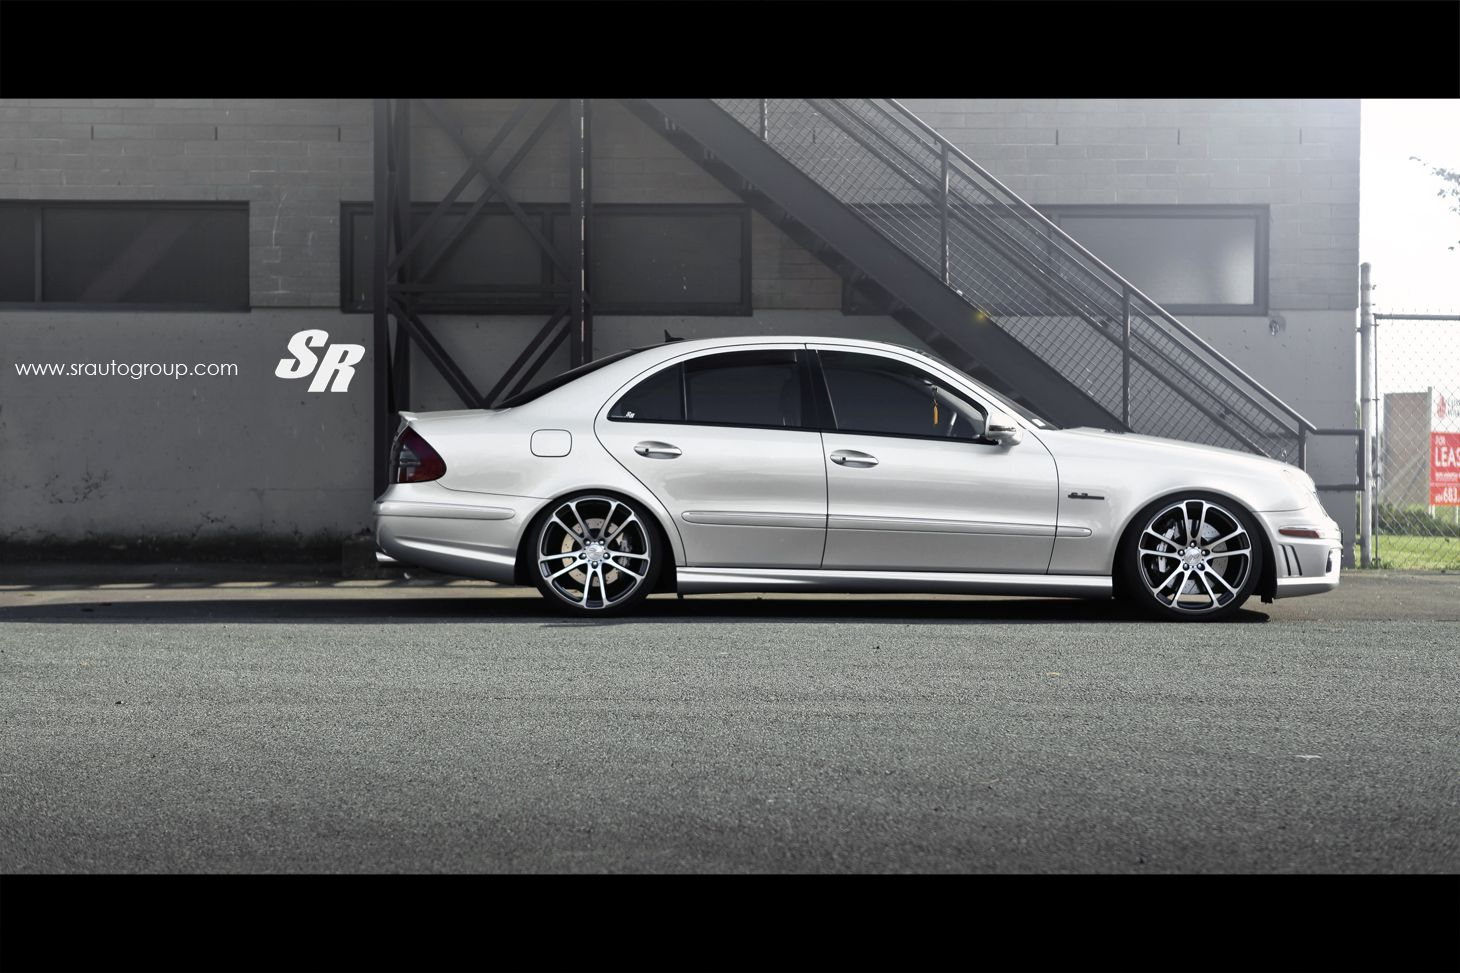 CEC c882 on E63 AMG. sytle.